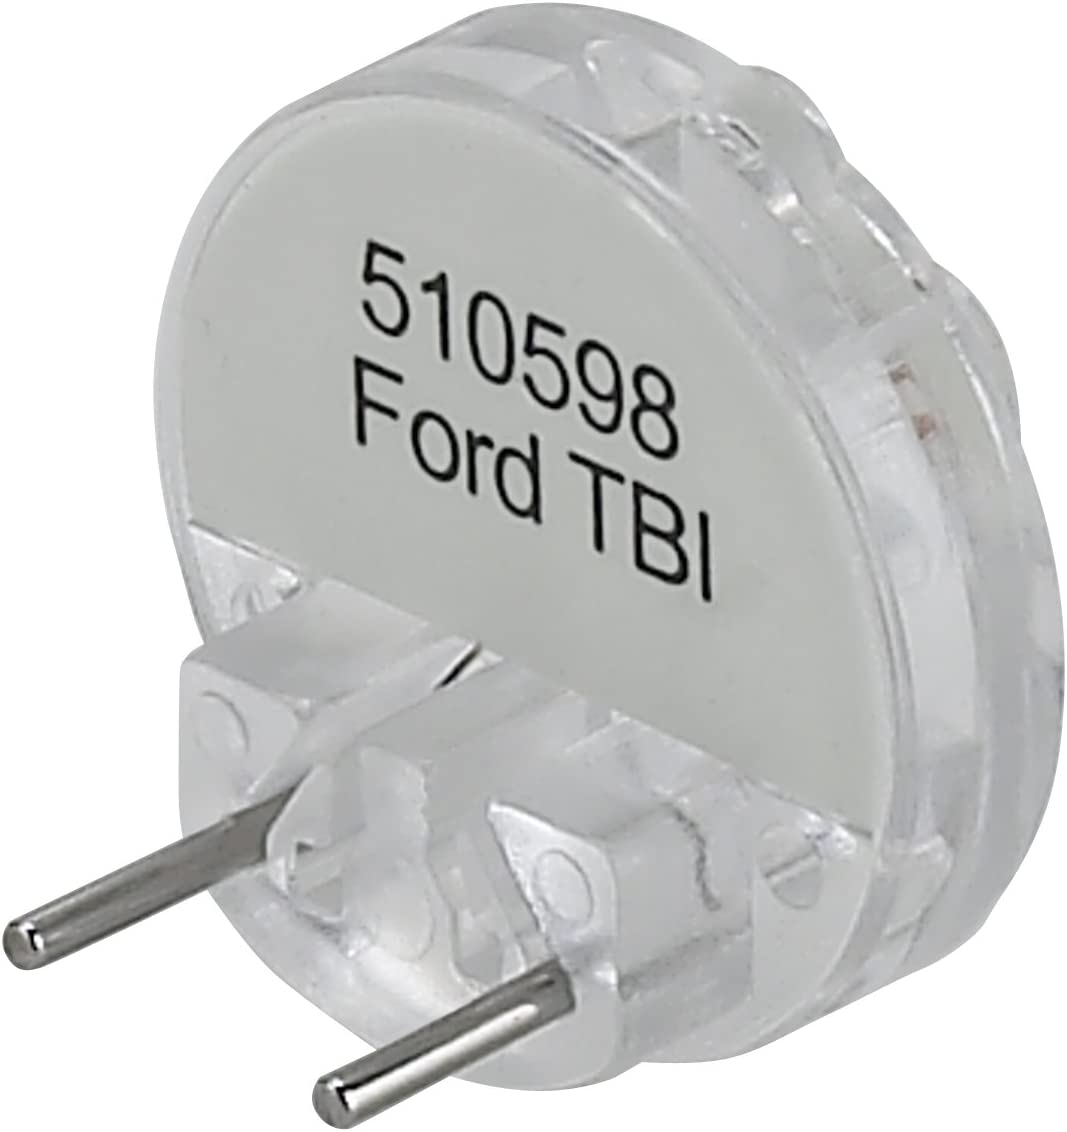 OTC 7601 Noid Light for Ford TBI